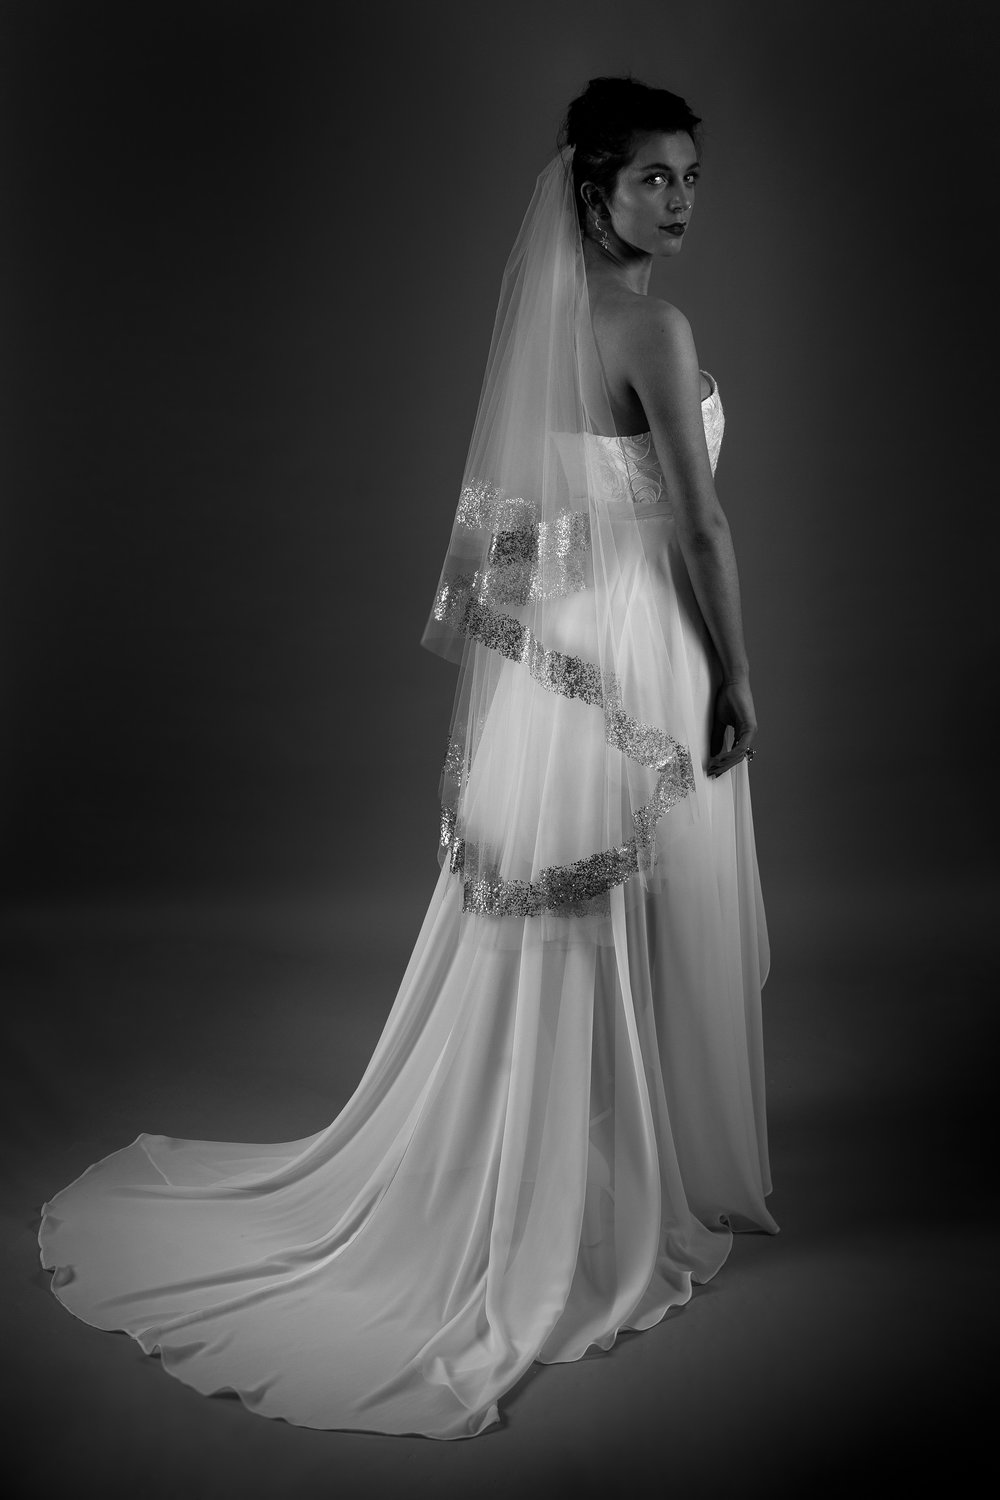 METALLIC VEIL WITH BLAKE DRESS AND ARIELLE OVERSKIRT